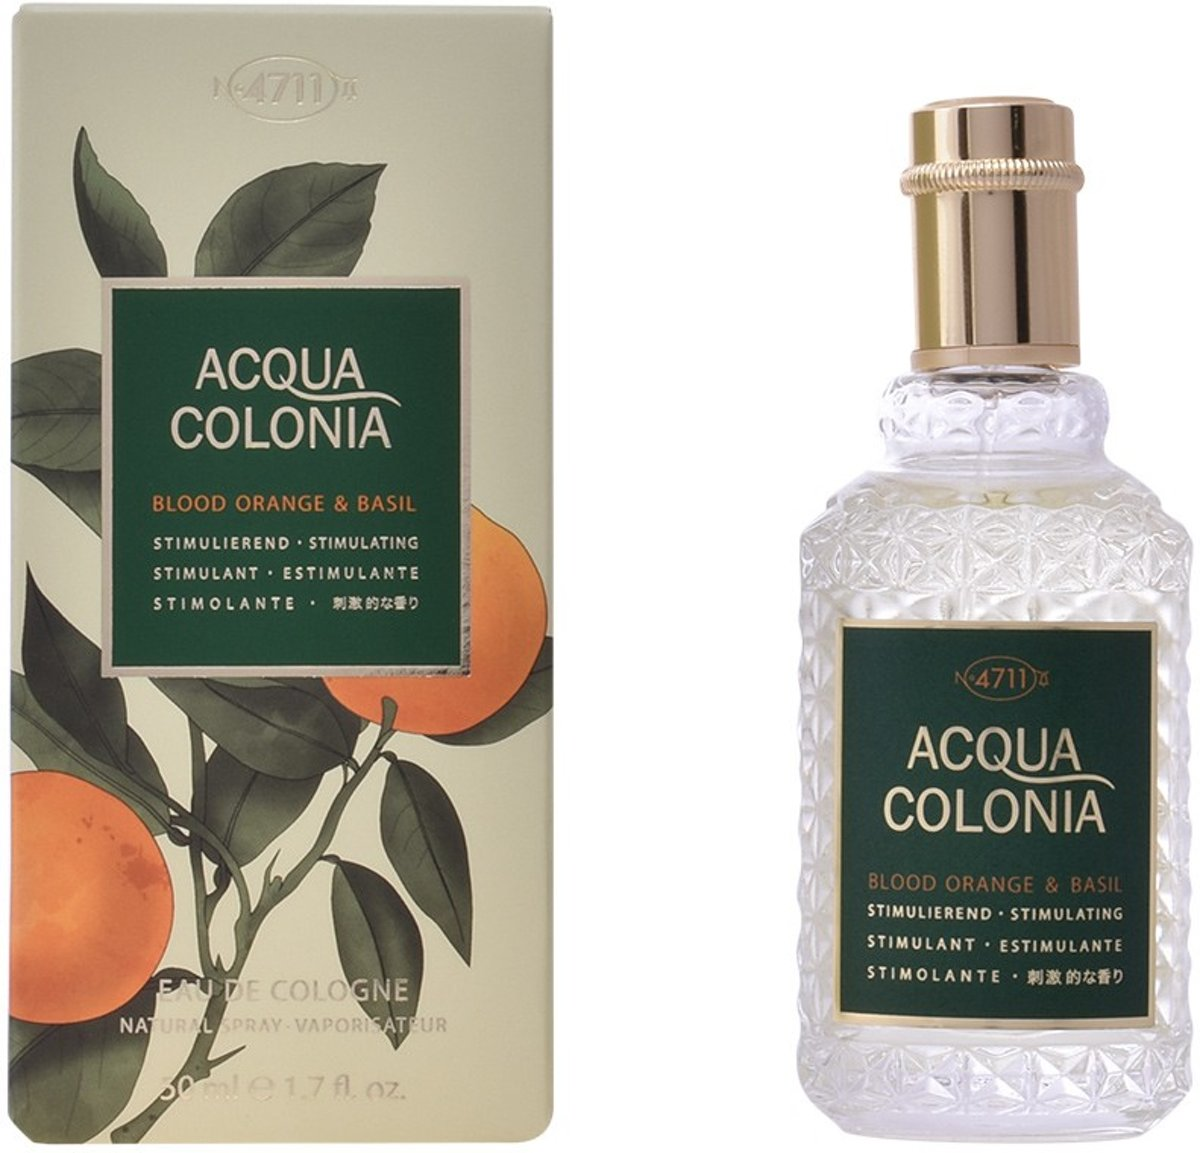 MULTI BUNDEL 2 stuks ACQUA colonia BLOOD ORANGE & BASIL Eau de Cologne Spray 50 ml